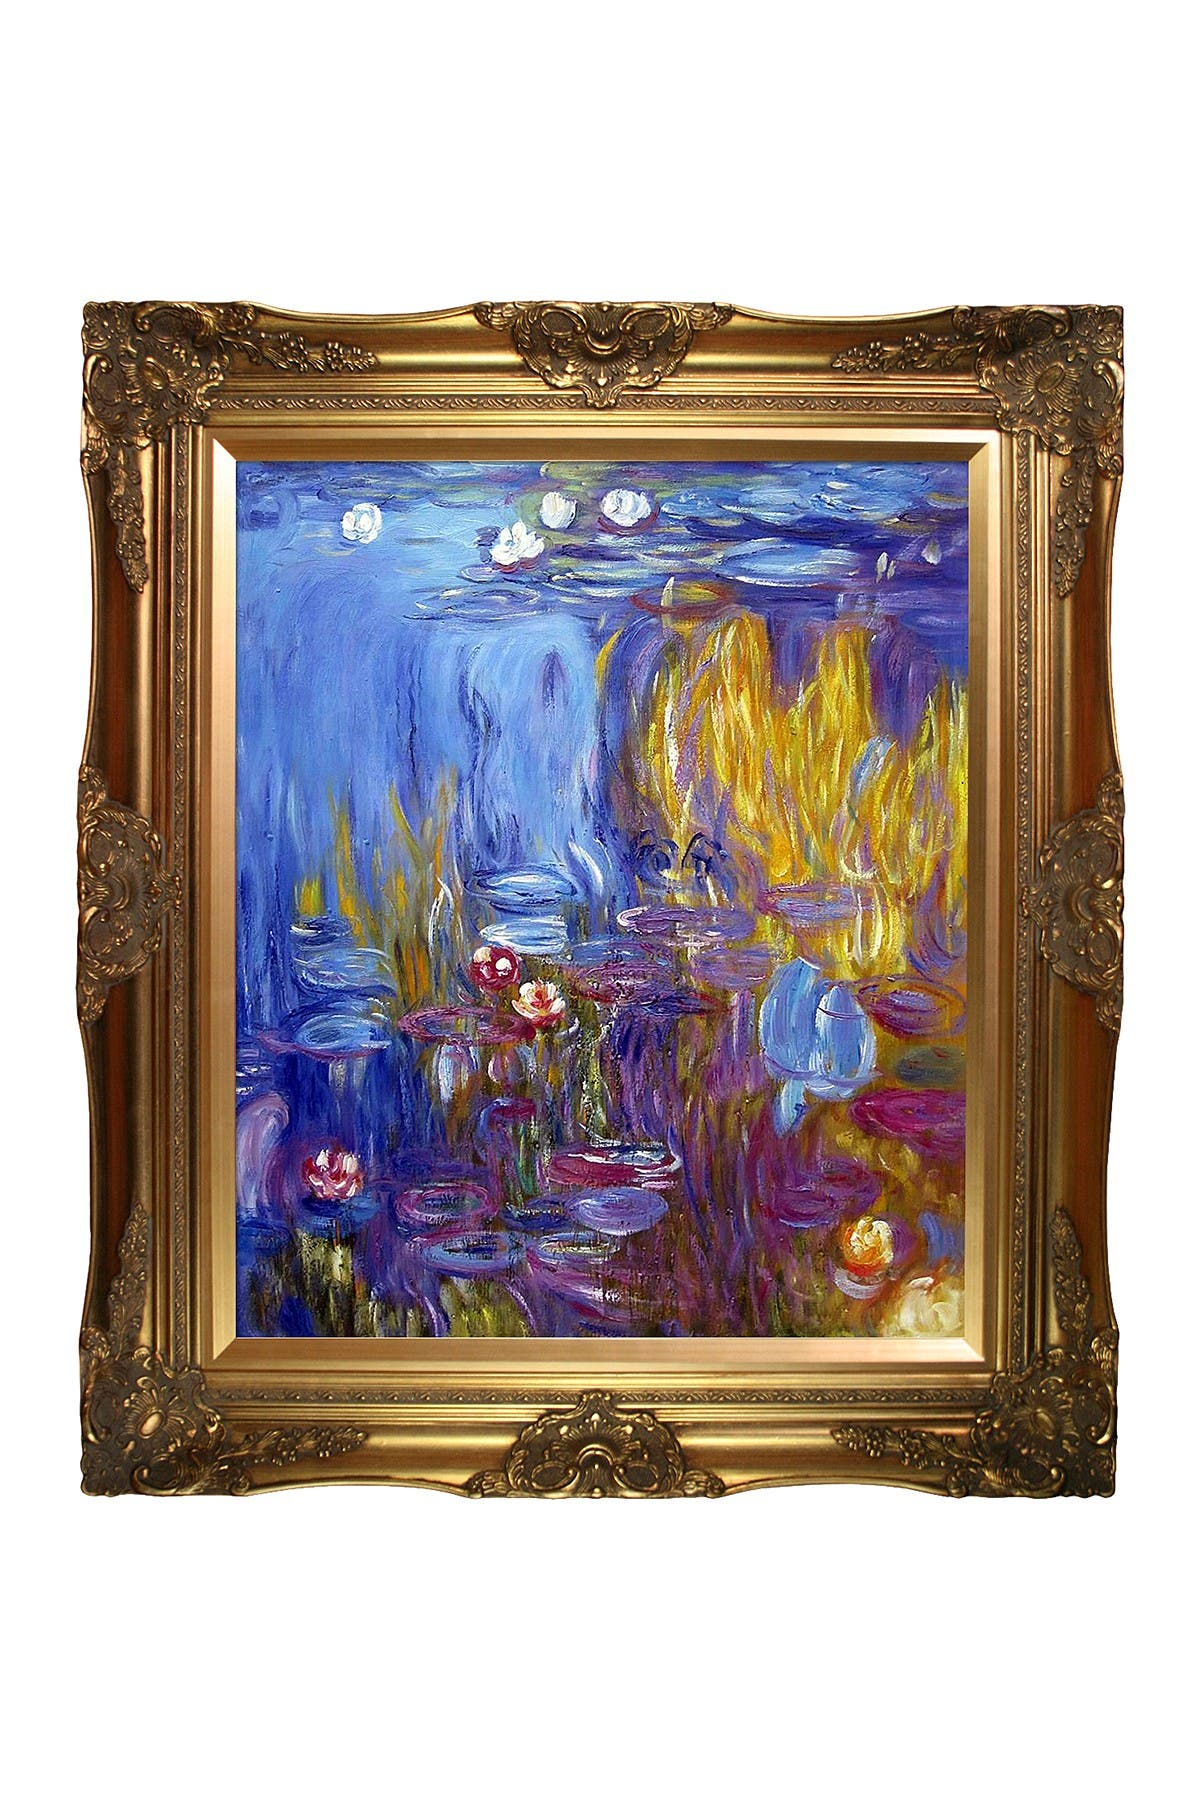 Image of Overstock Art Water Lilies, 1917 by Claude Monet Framed Hand Painted Oil Reproduction